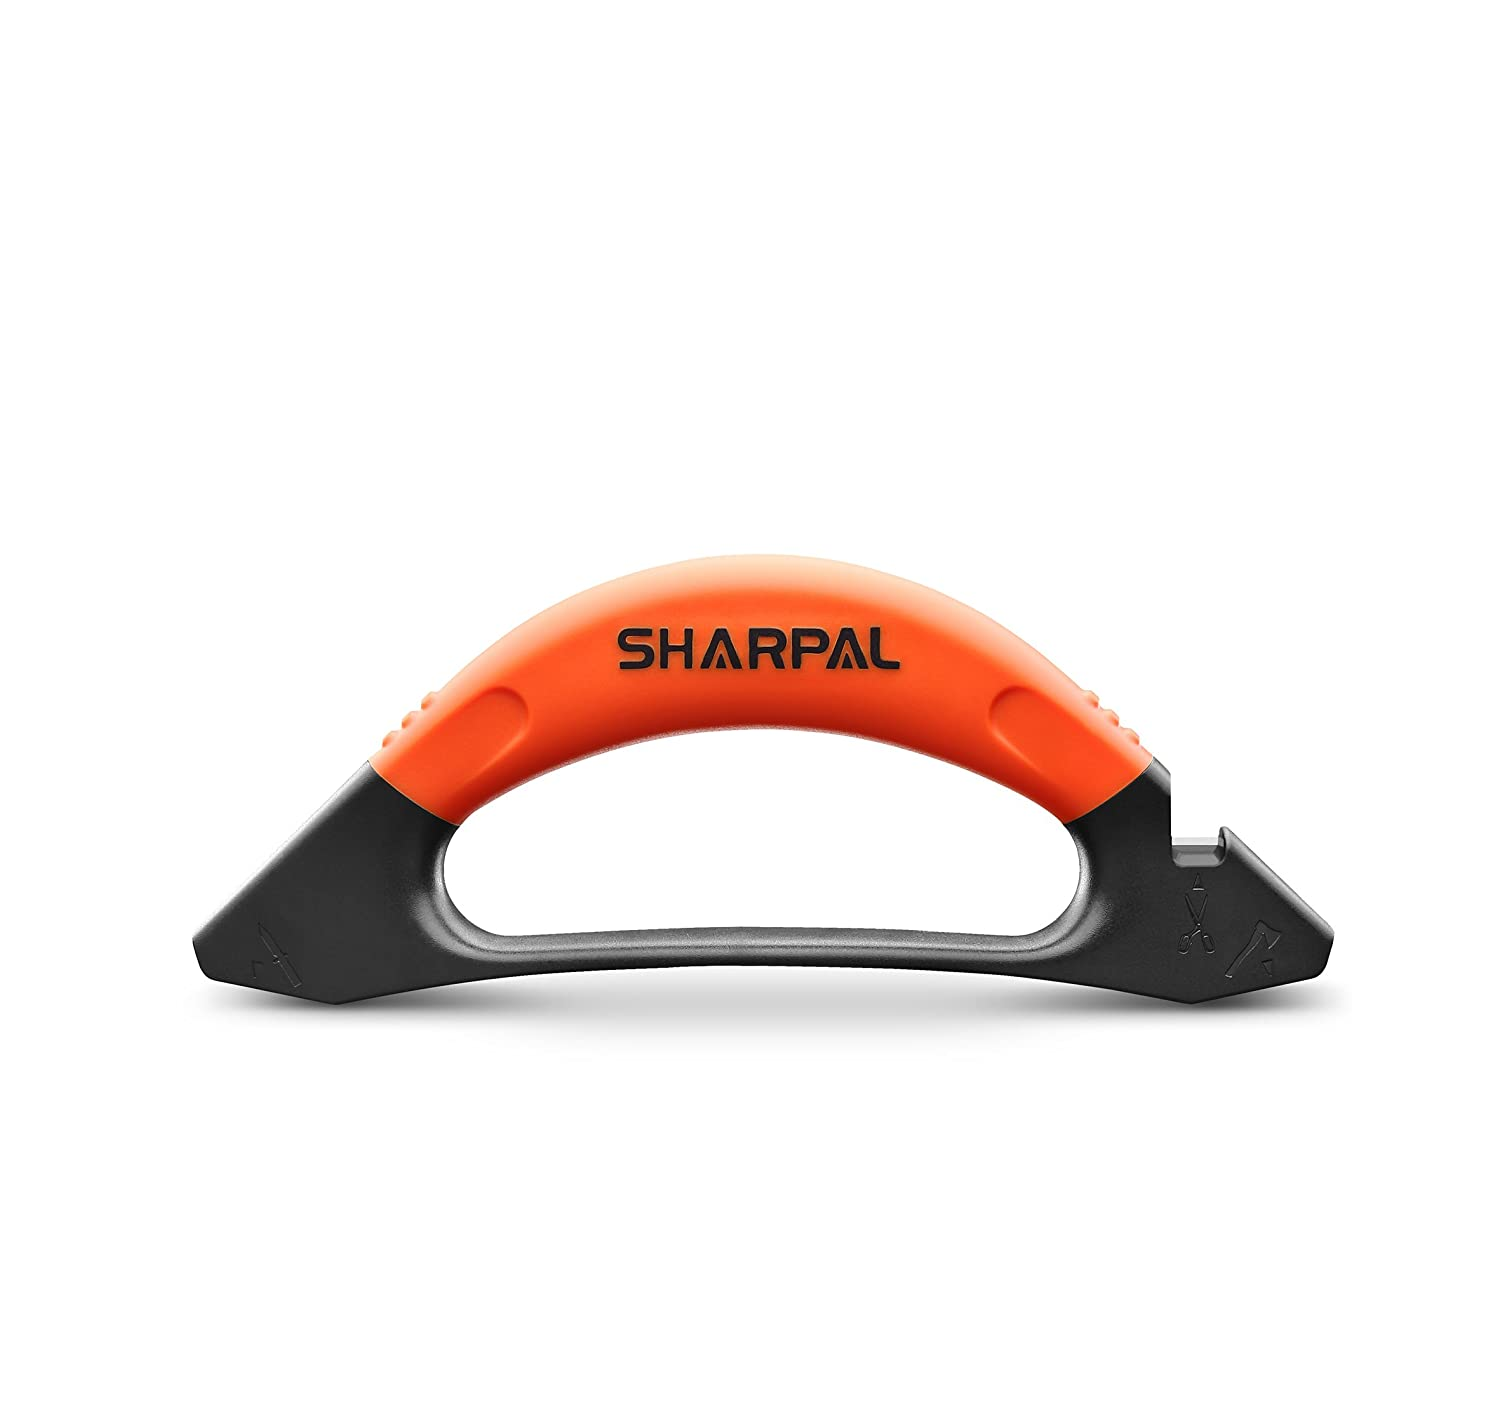 SHARPAL 112N 3-in-1 Professional Knife, Axe & Scissors Garden Tool Sharpener